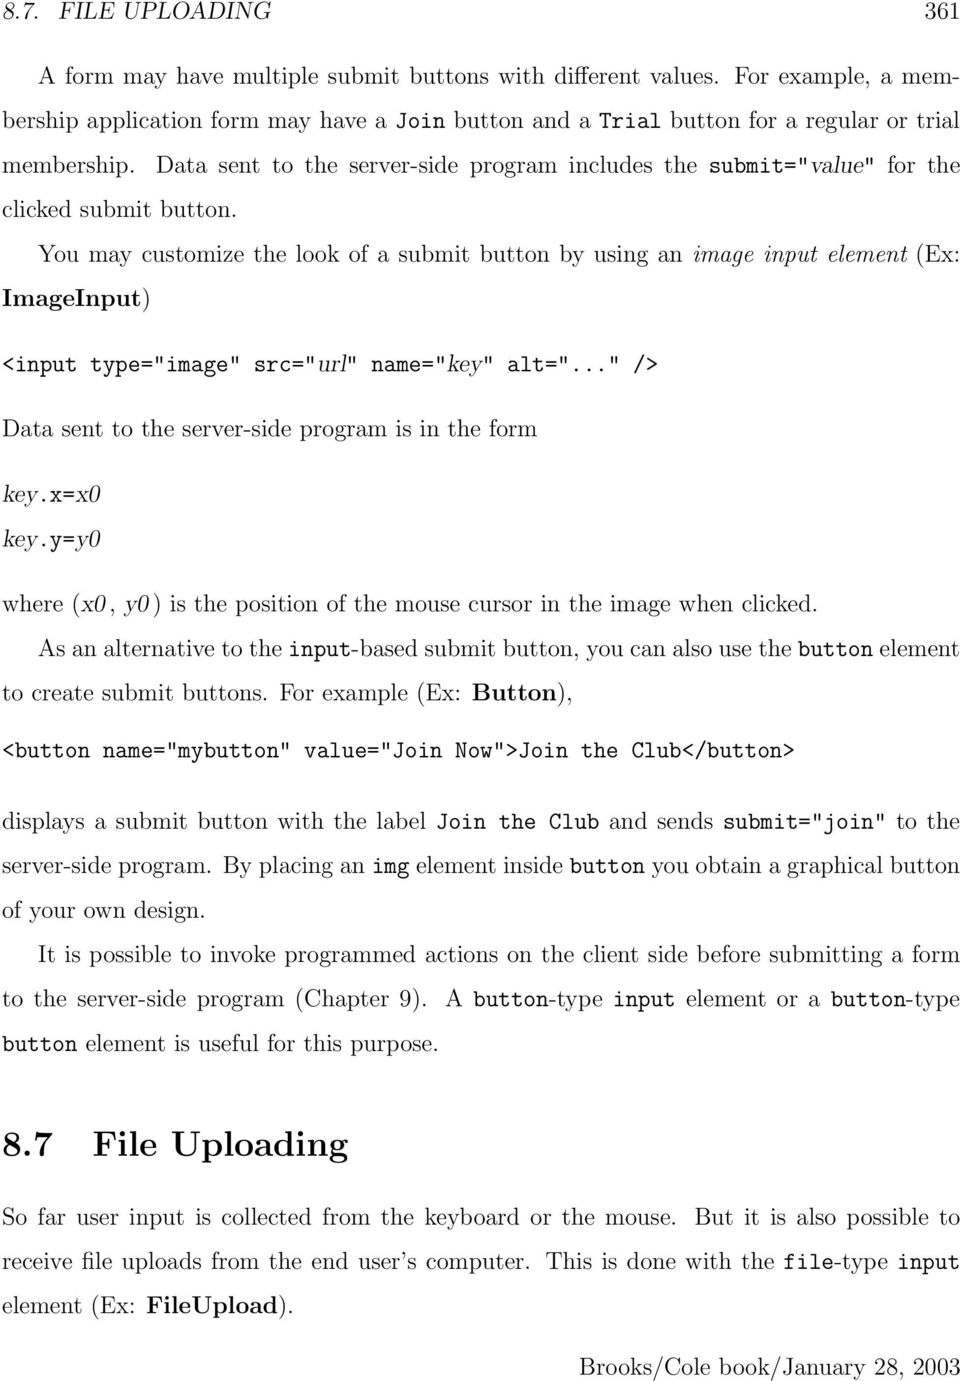 Chapter 8  Forms and Form Processing - PDF